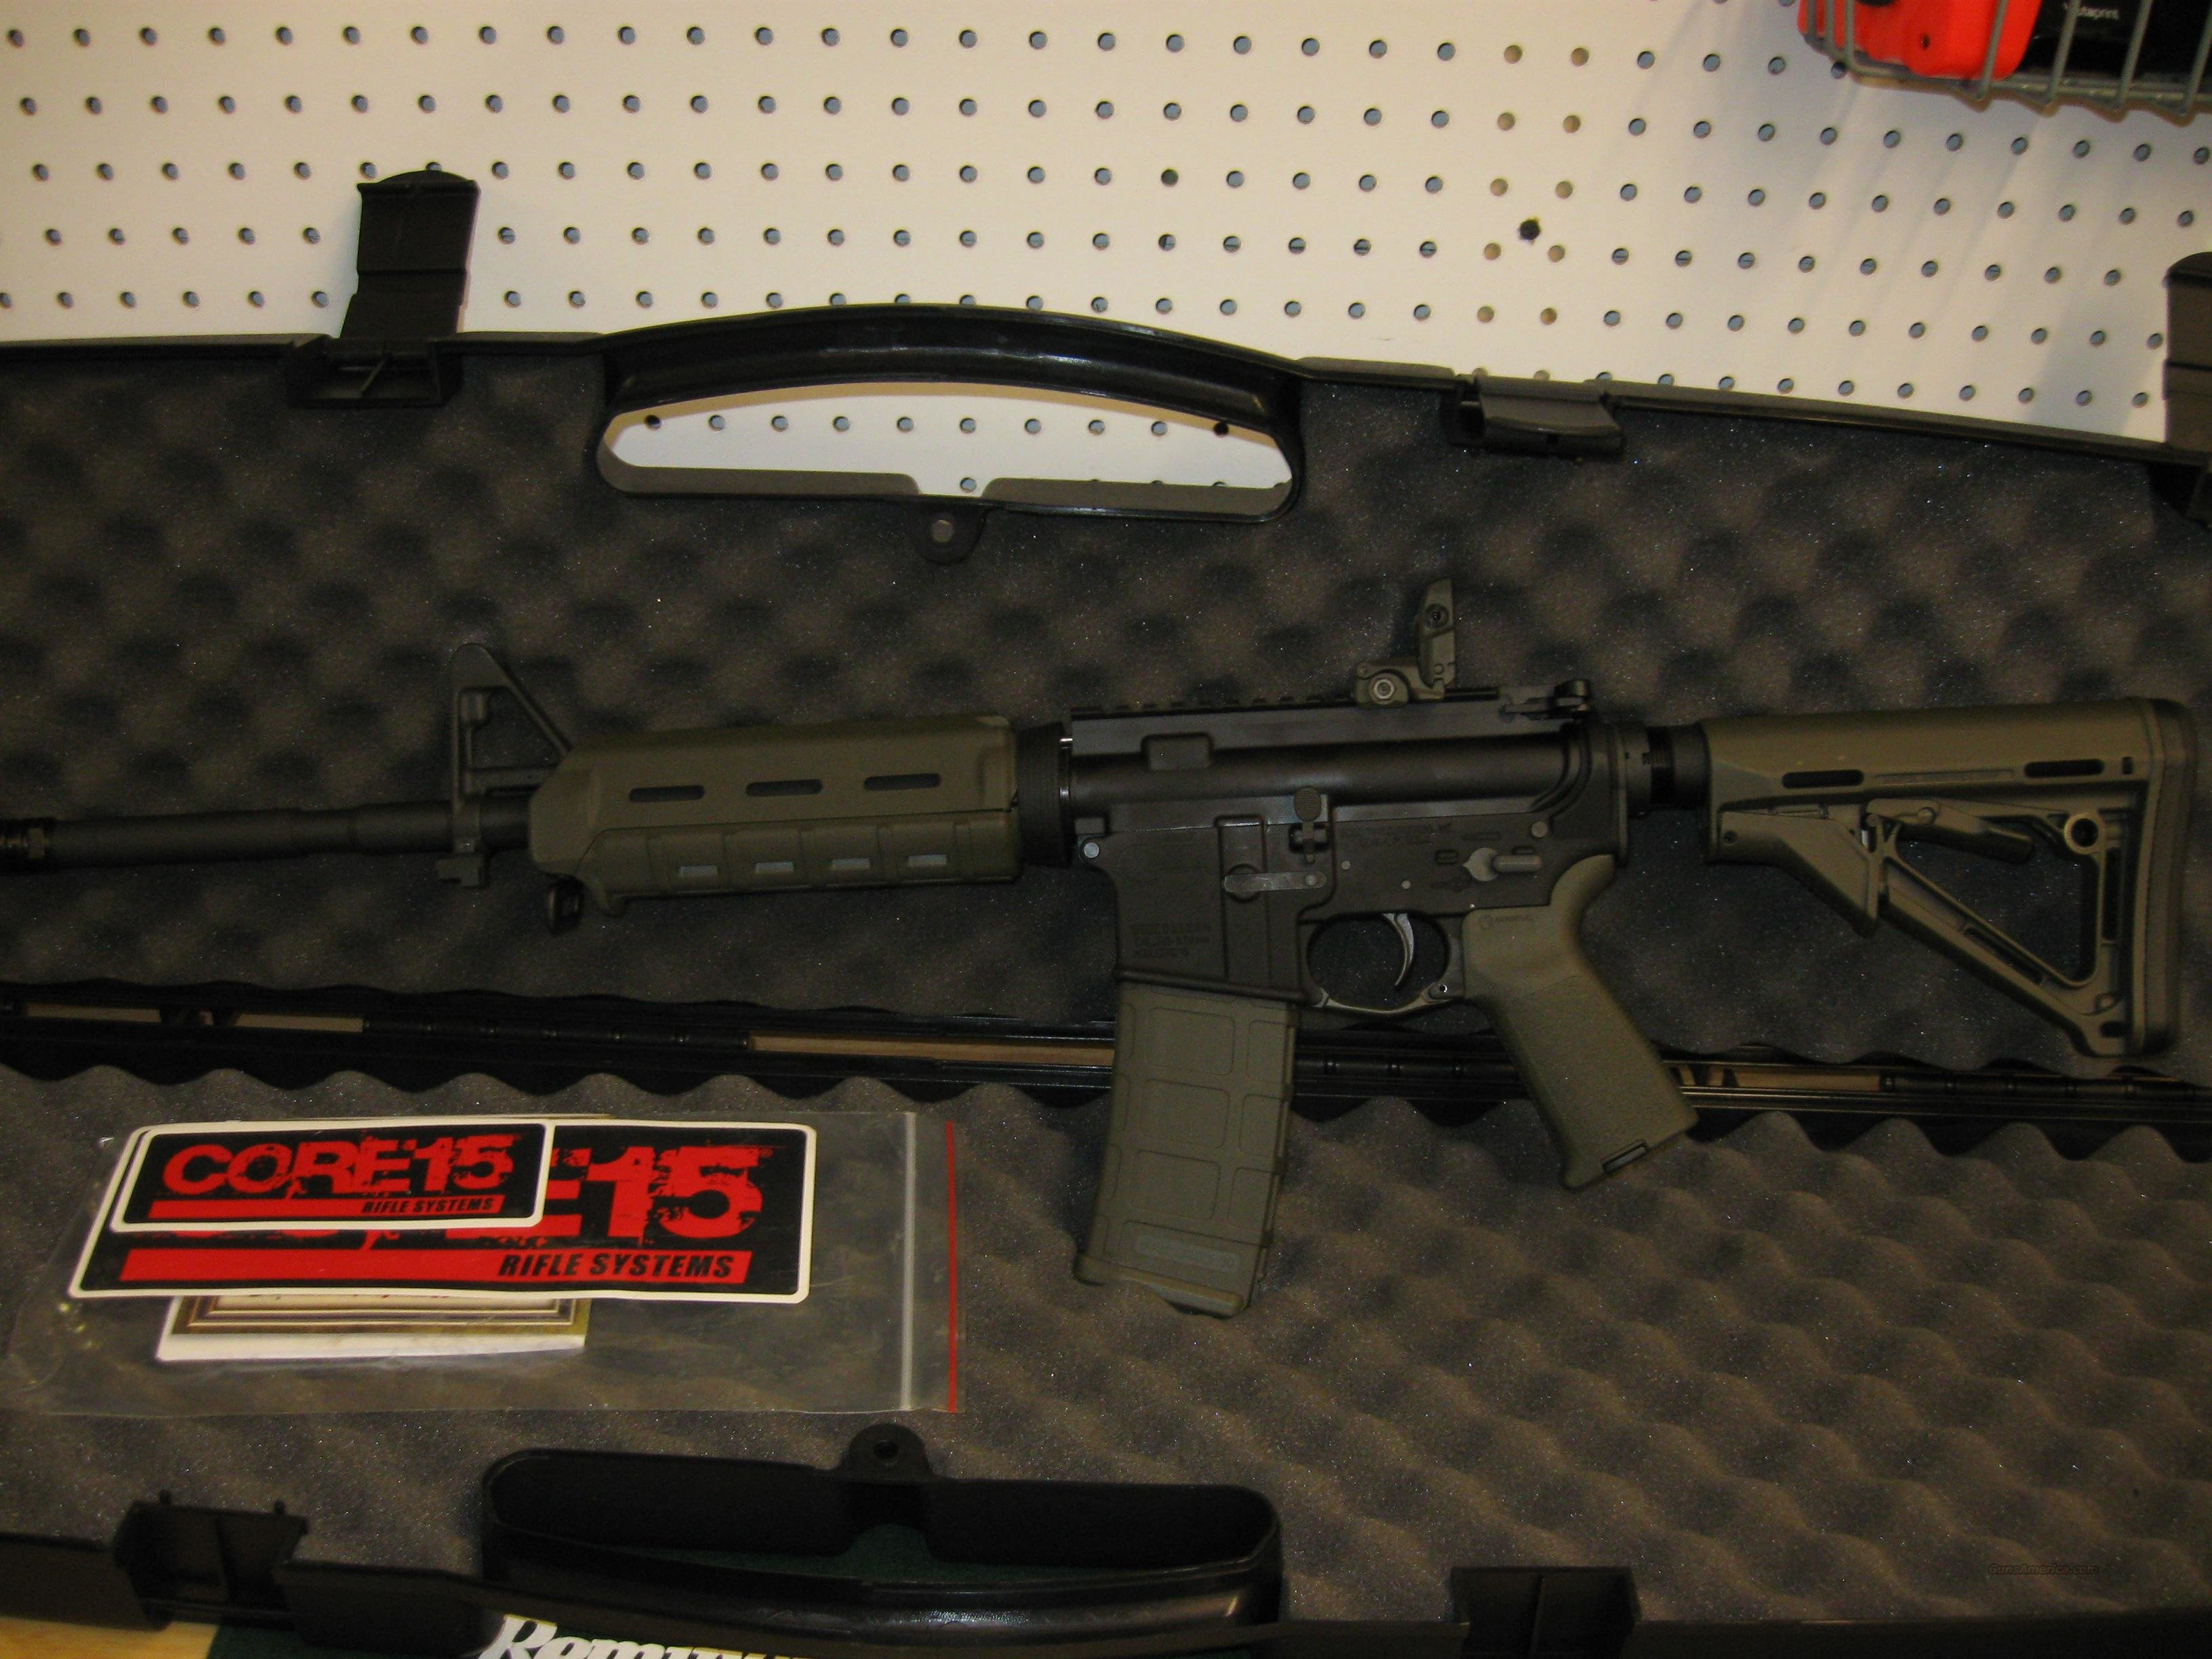 Core-15 MOE AR15 M4 Rifle 100425, 5.56mm, 16 in, OD Green Magpul   Guns > Rifles > AR-15 Rifles - Small Manufacturers > Complete Rifle